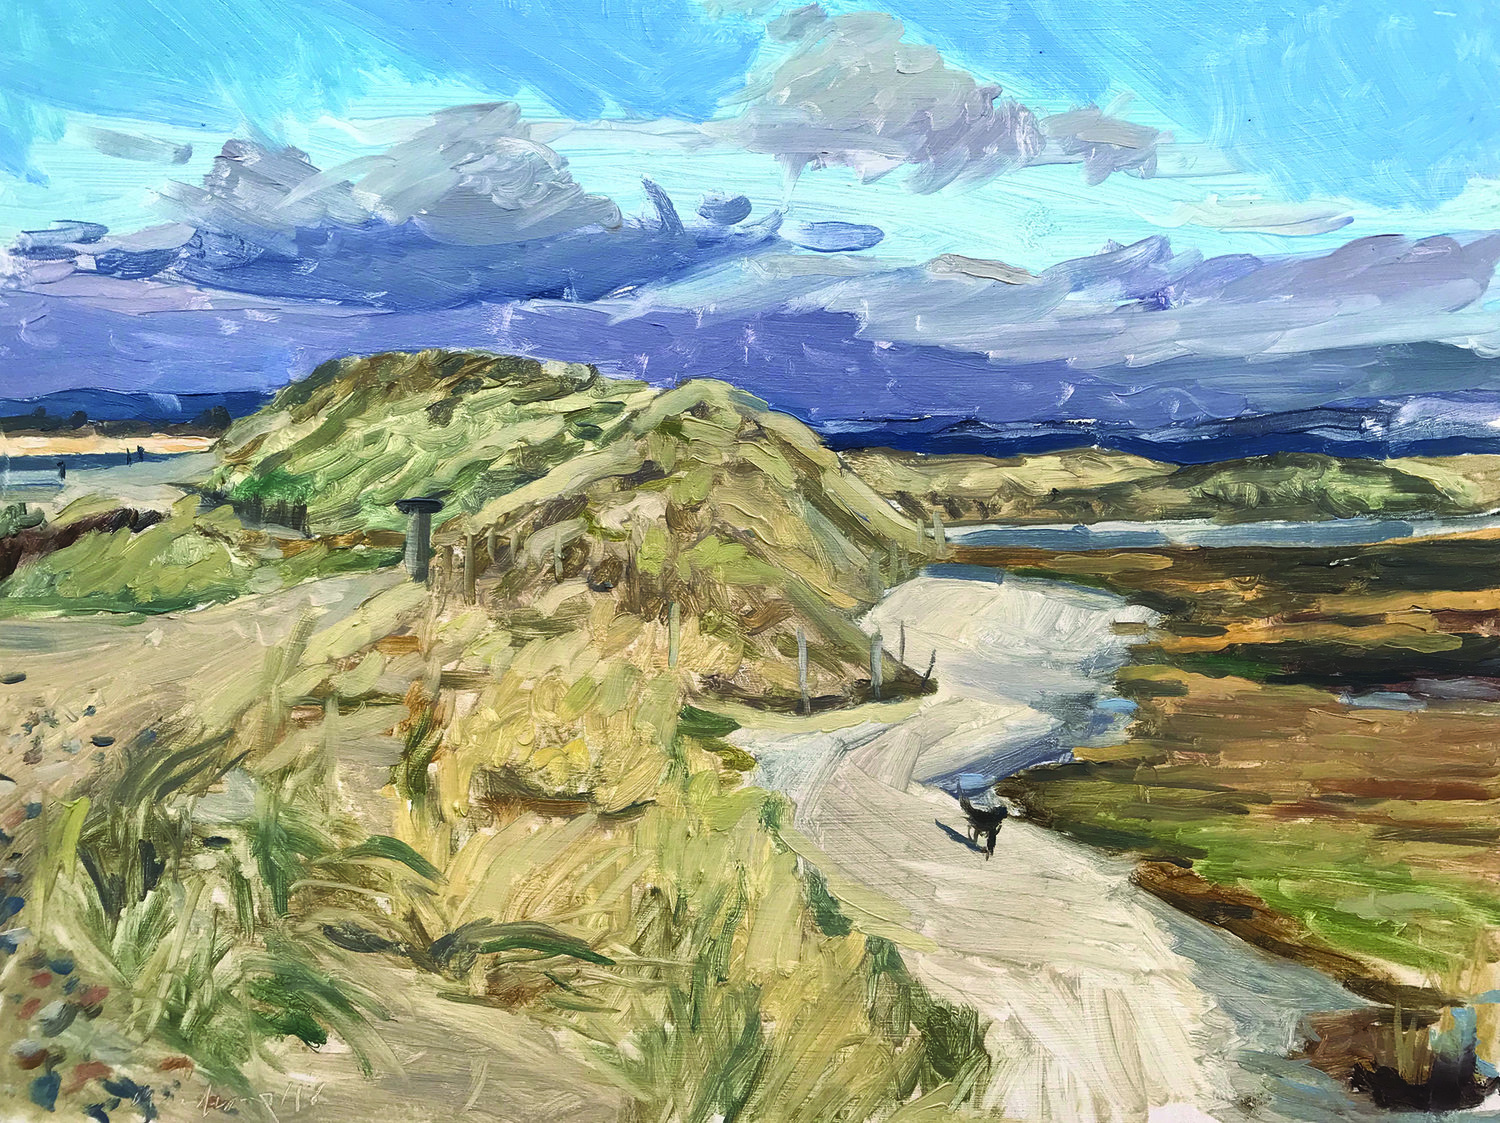 'Dog on the path, East Head', Sarah Manolescue, Oil on panel, 30.5 x 40.5 cm